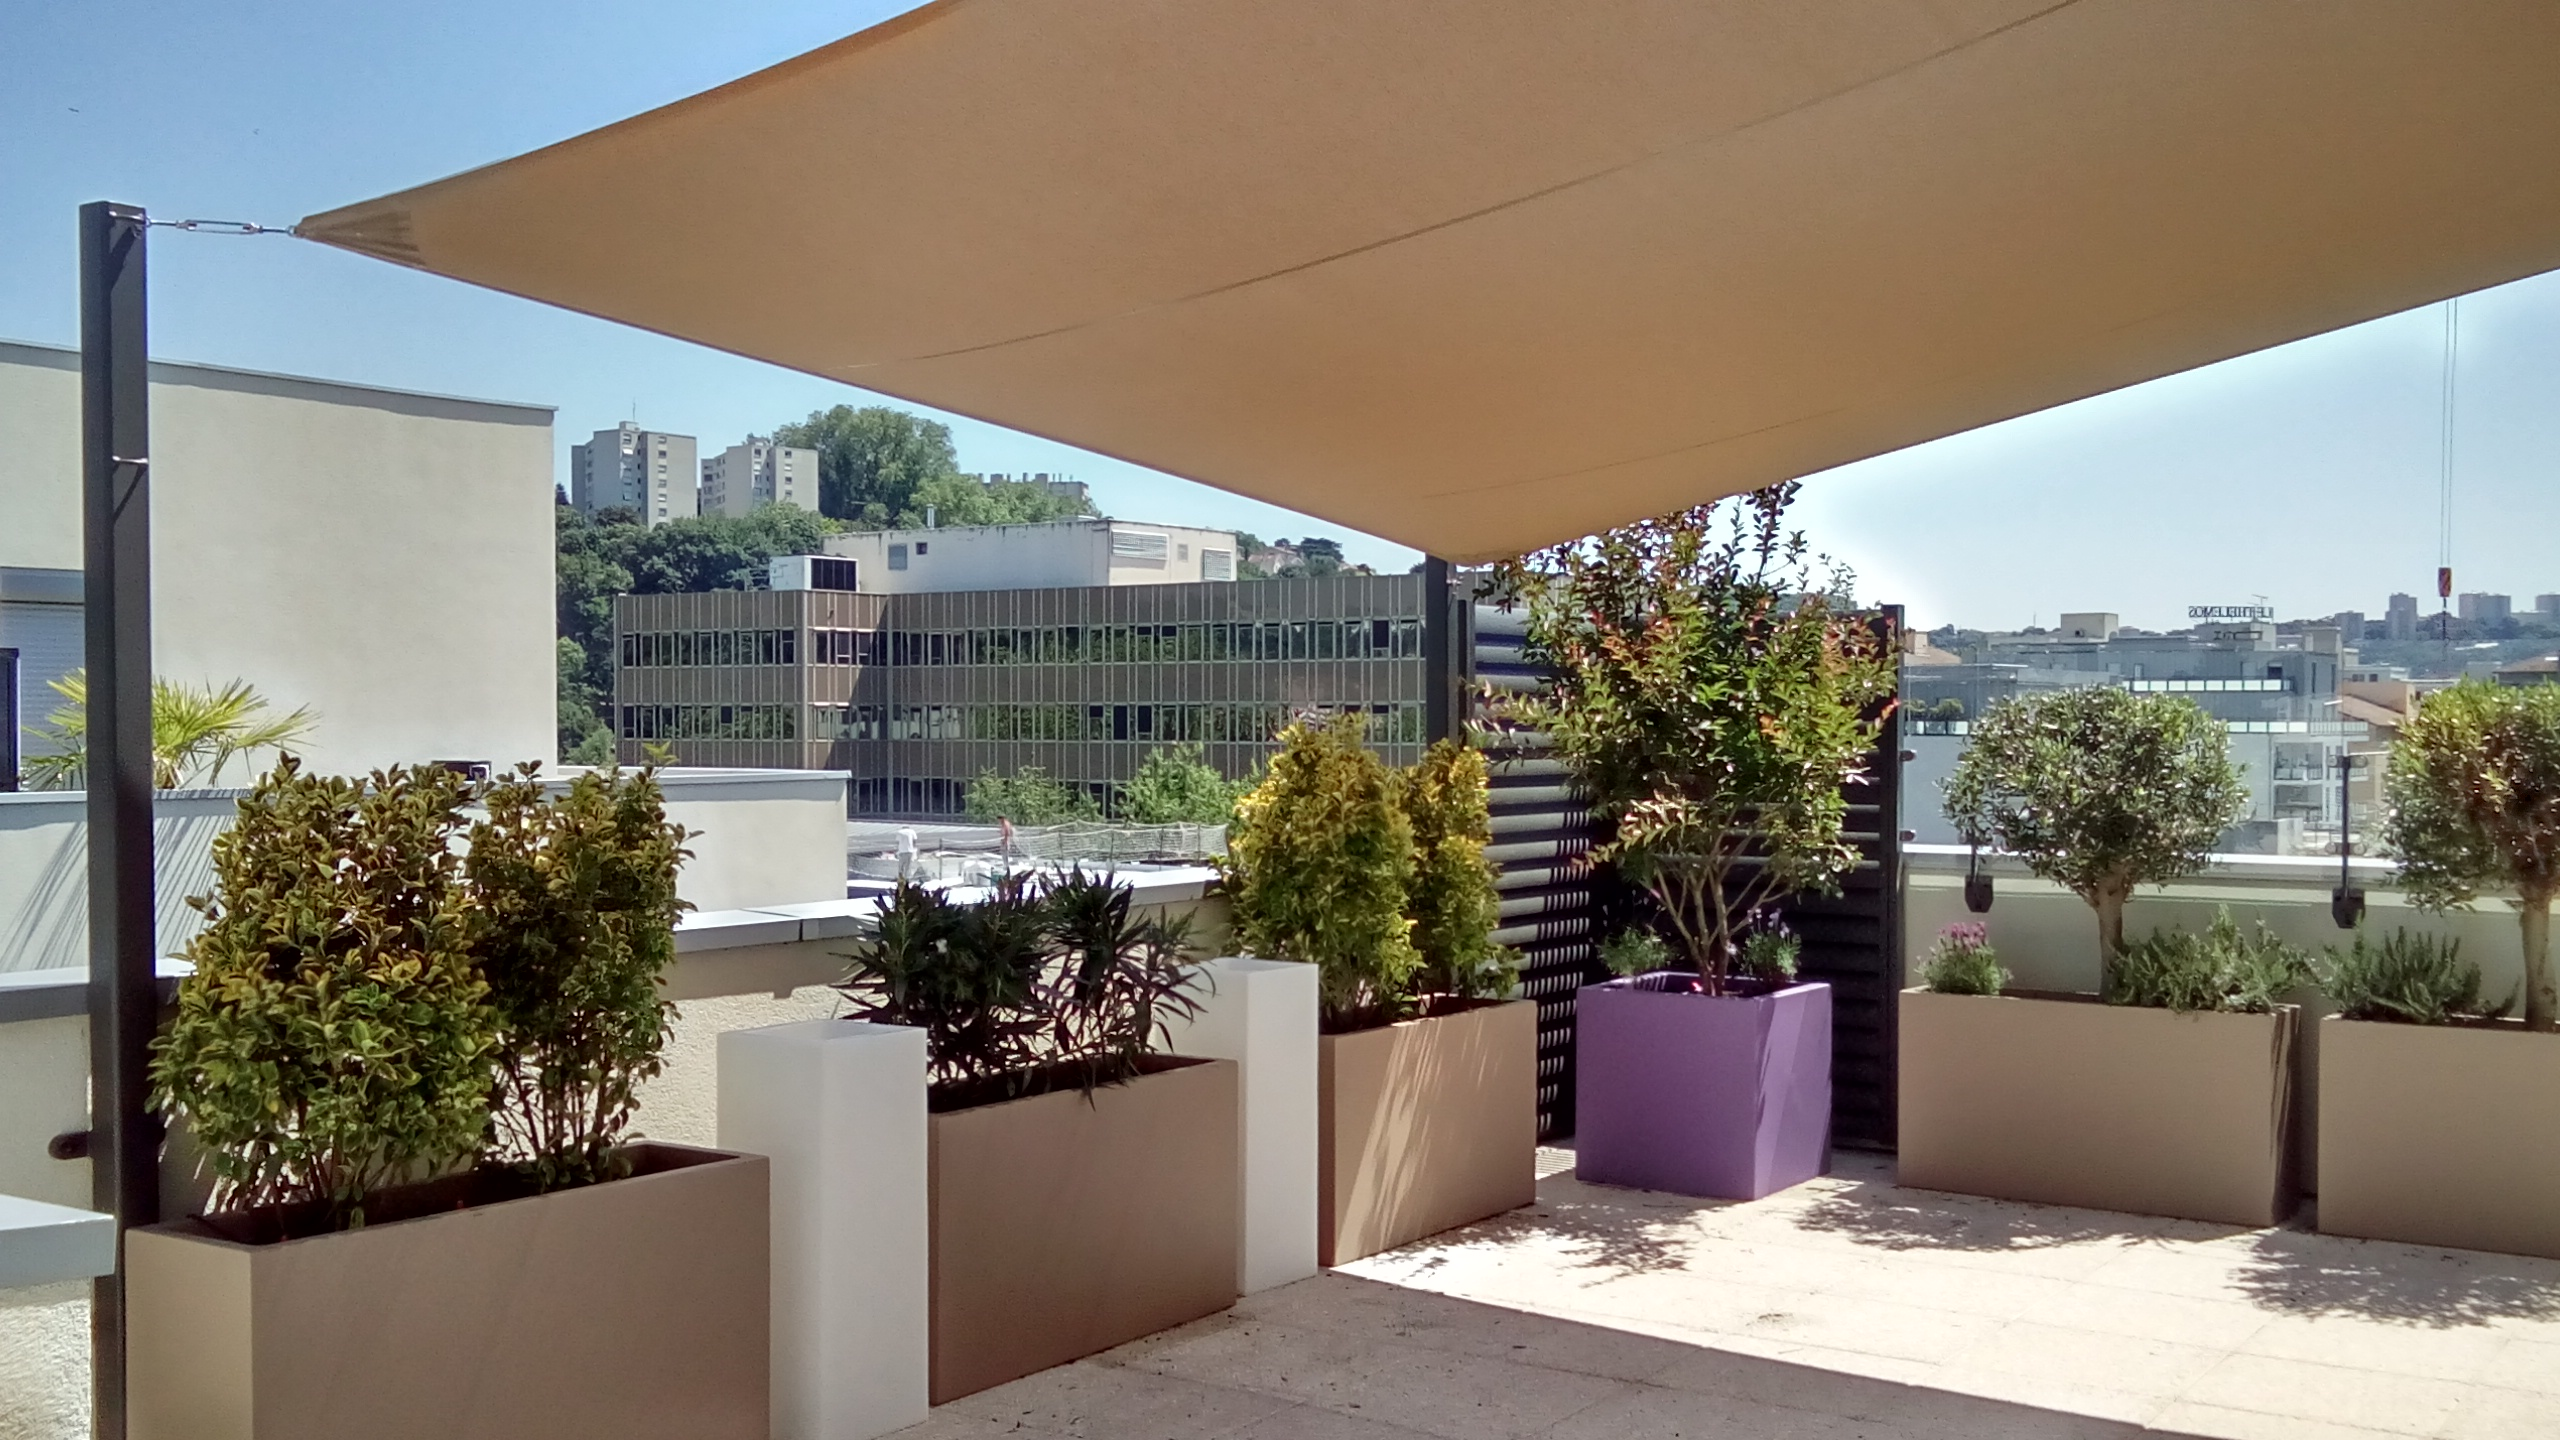 Am nagement de terrasse d 39 immeuble lyon - Amenagement de terrasse photos ...